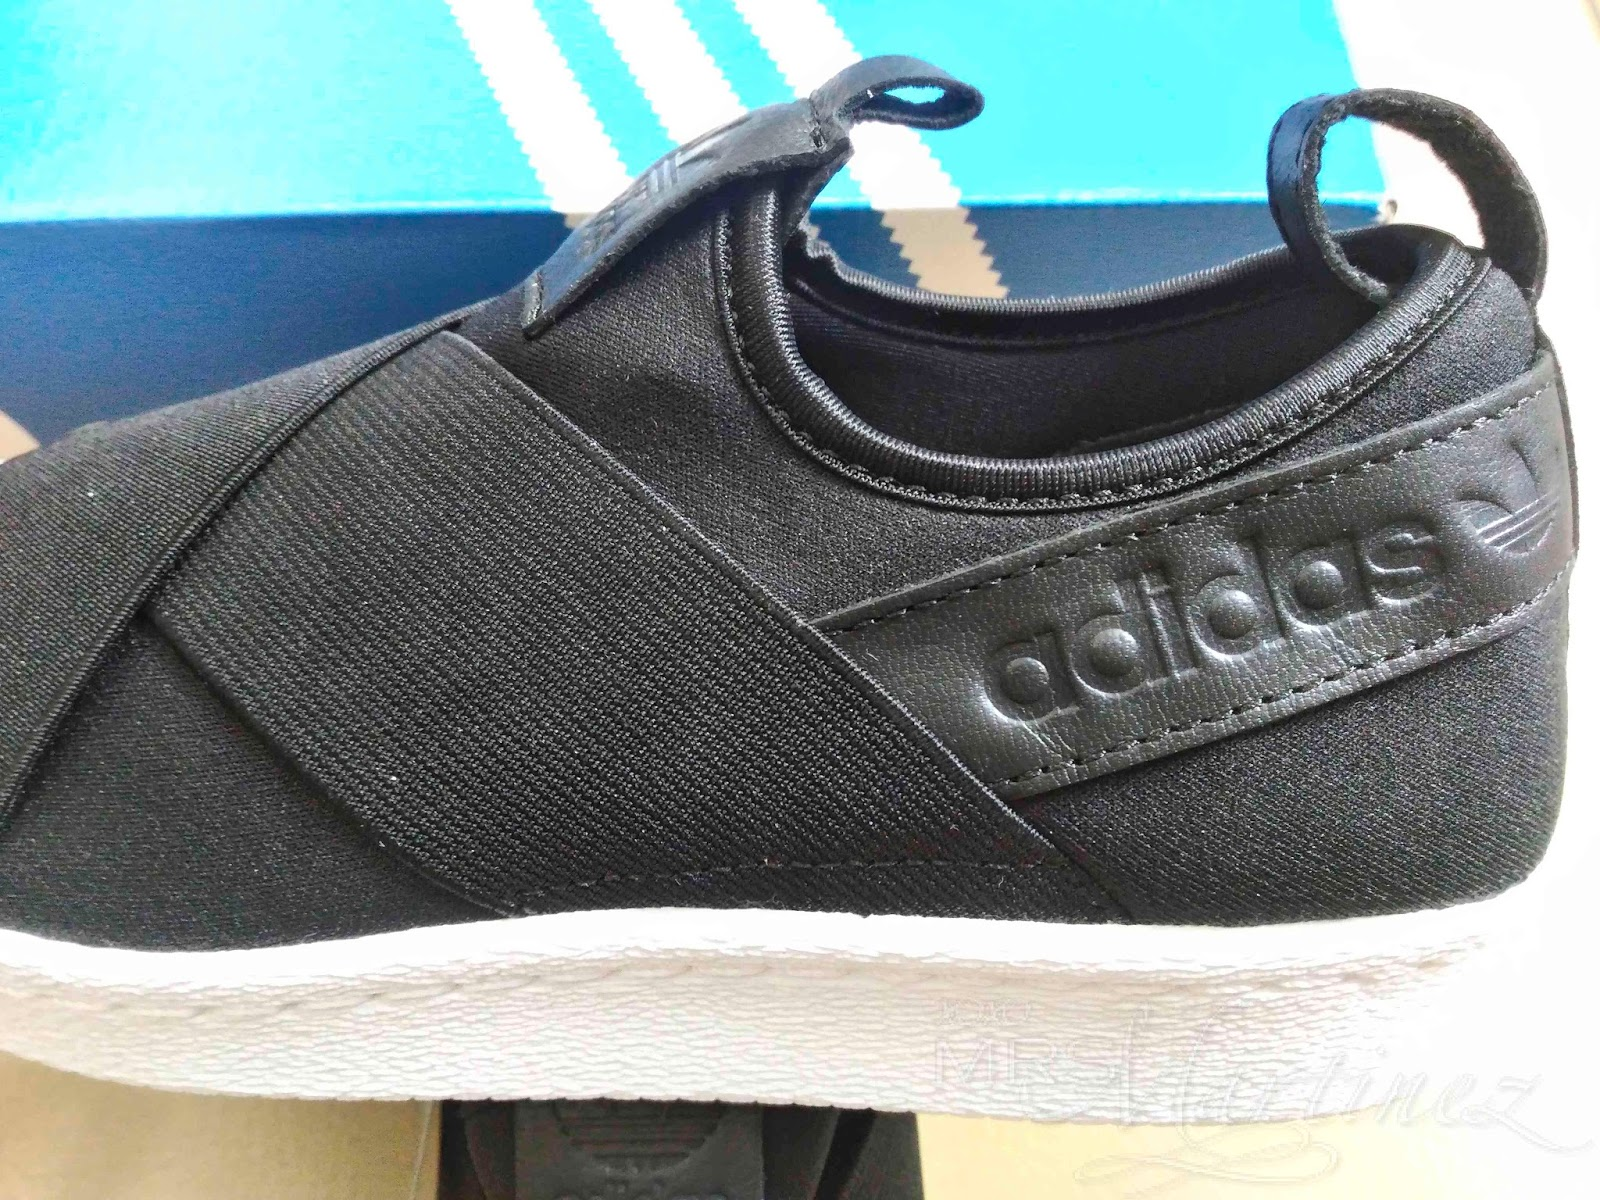 Adidas Superstar logo is debossed- the imprinted design causes depressions  in the leather material leaving a depressed imprint of the image